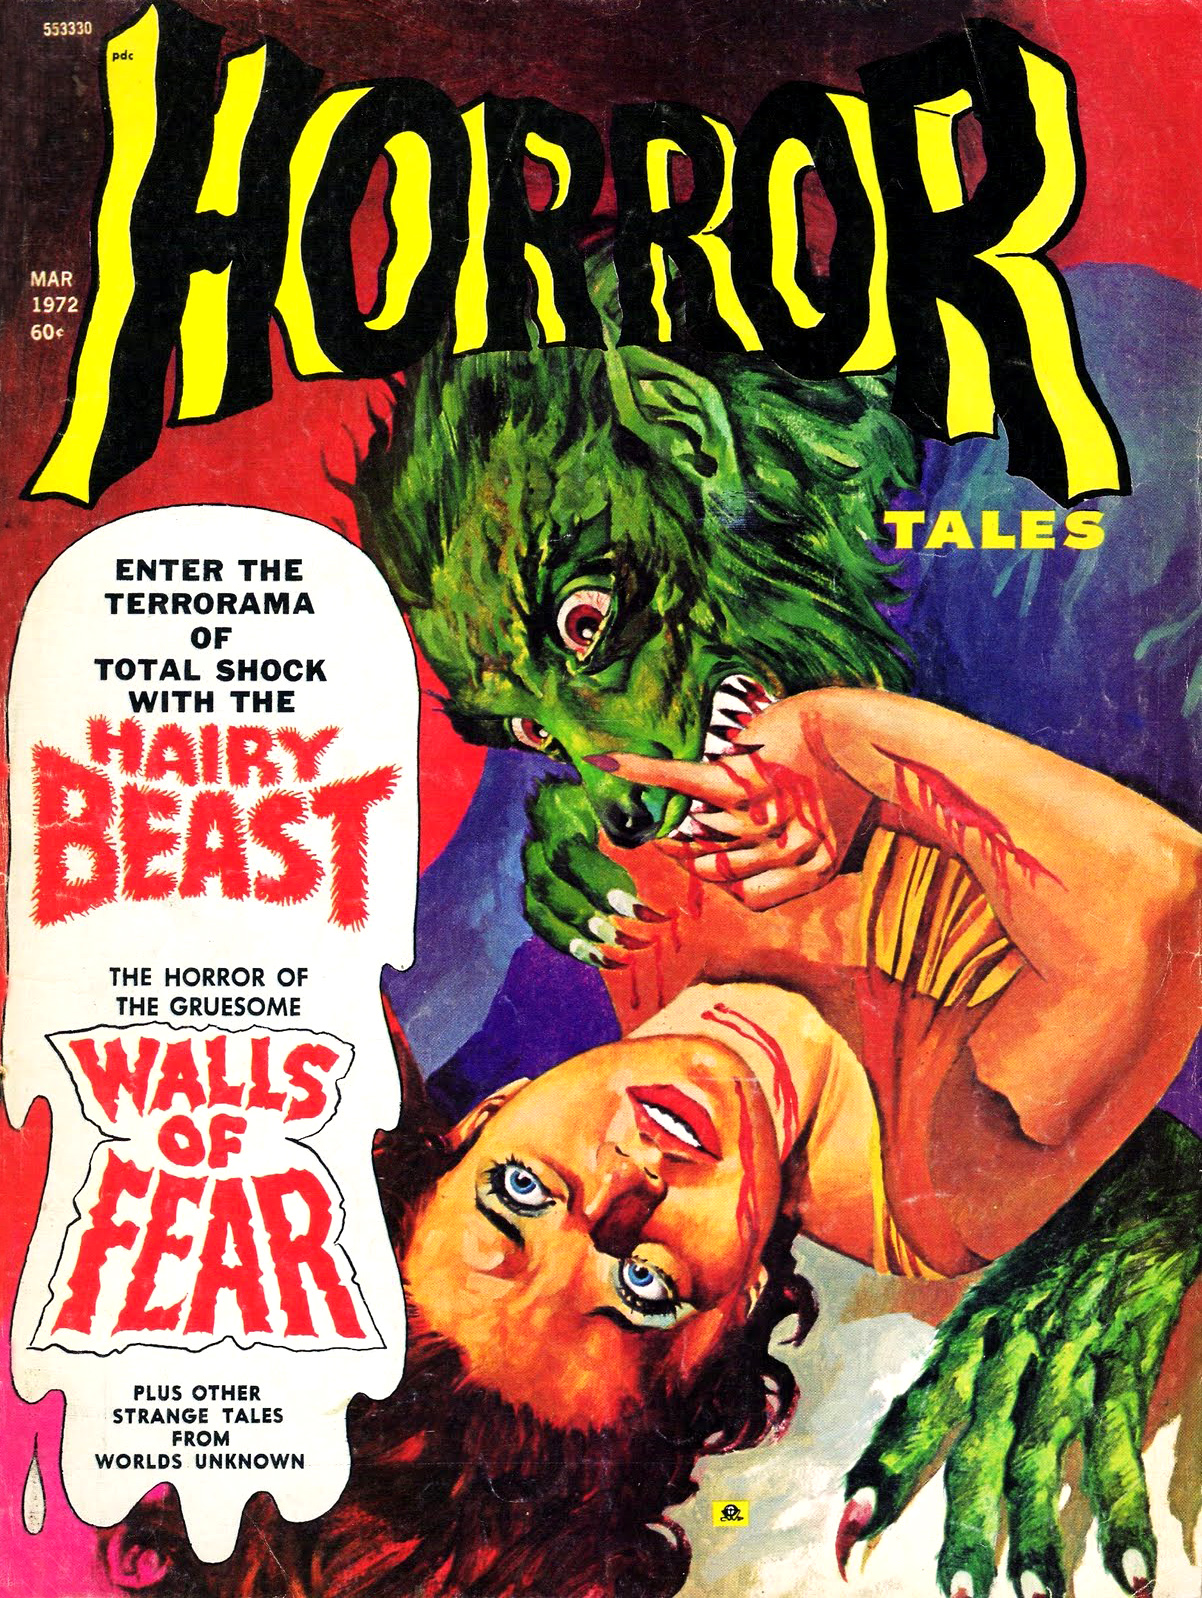 Horror Tales - Vol. 4 #2 (Eerie Publications, 1972)